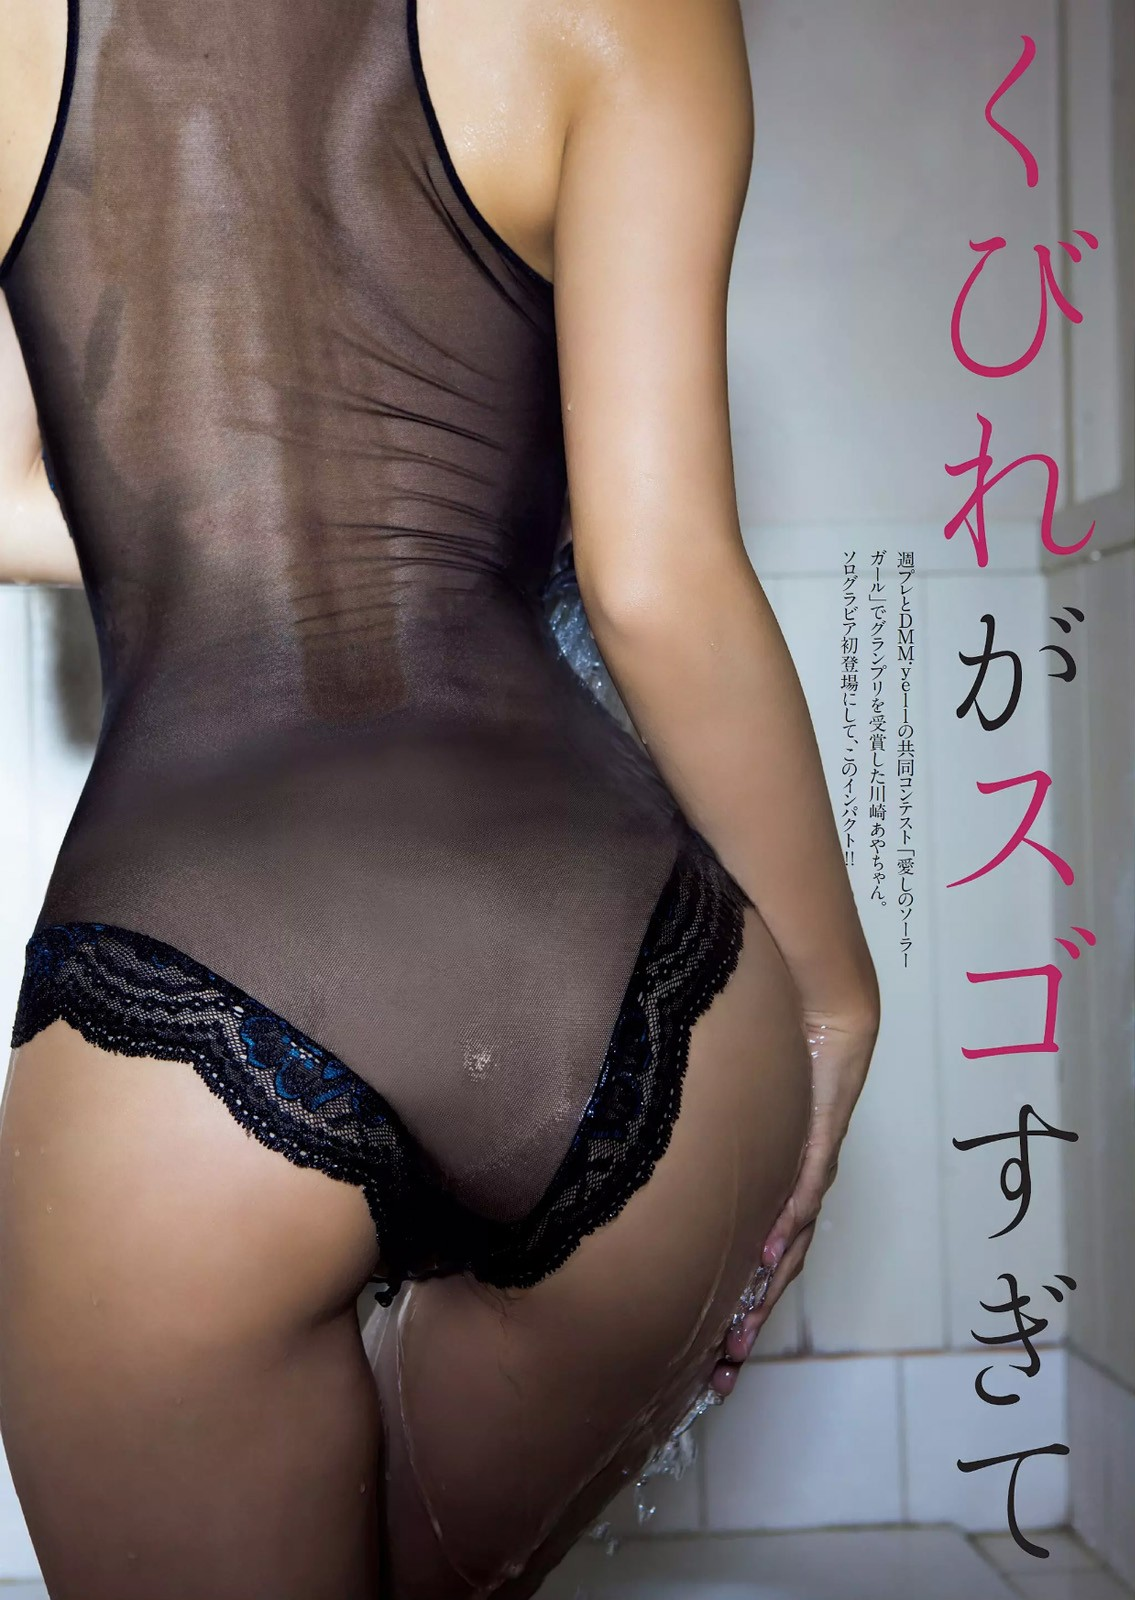 Bent over asian from behind 6